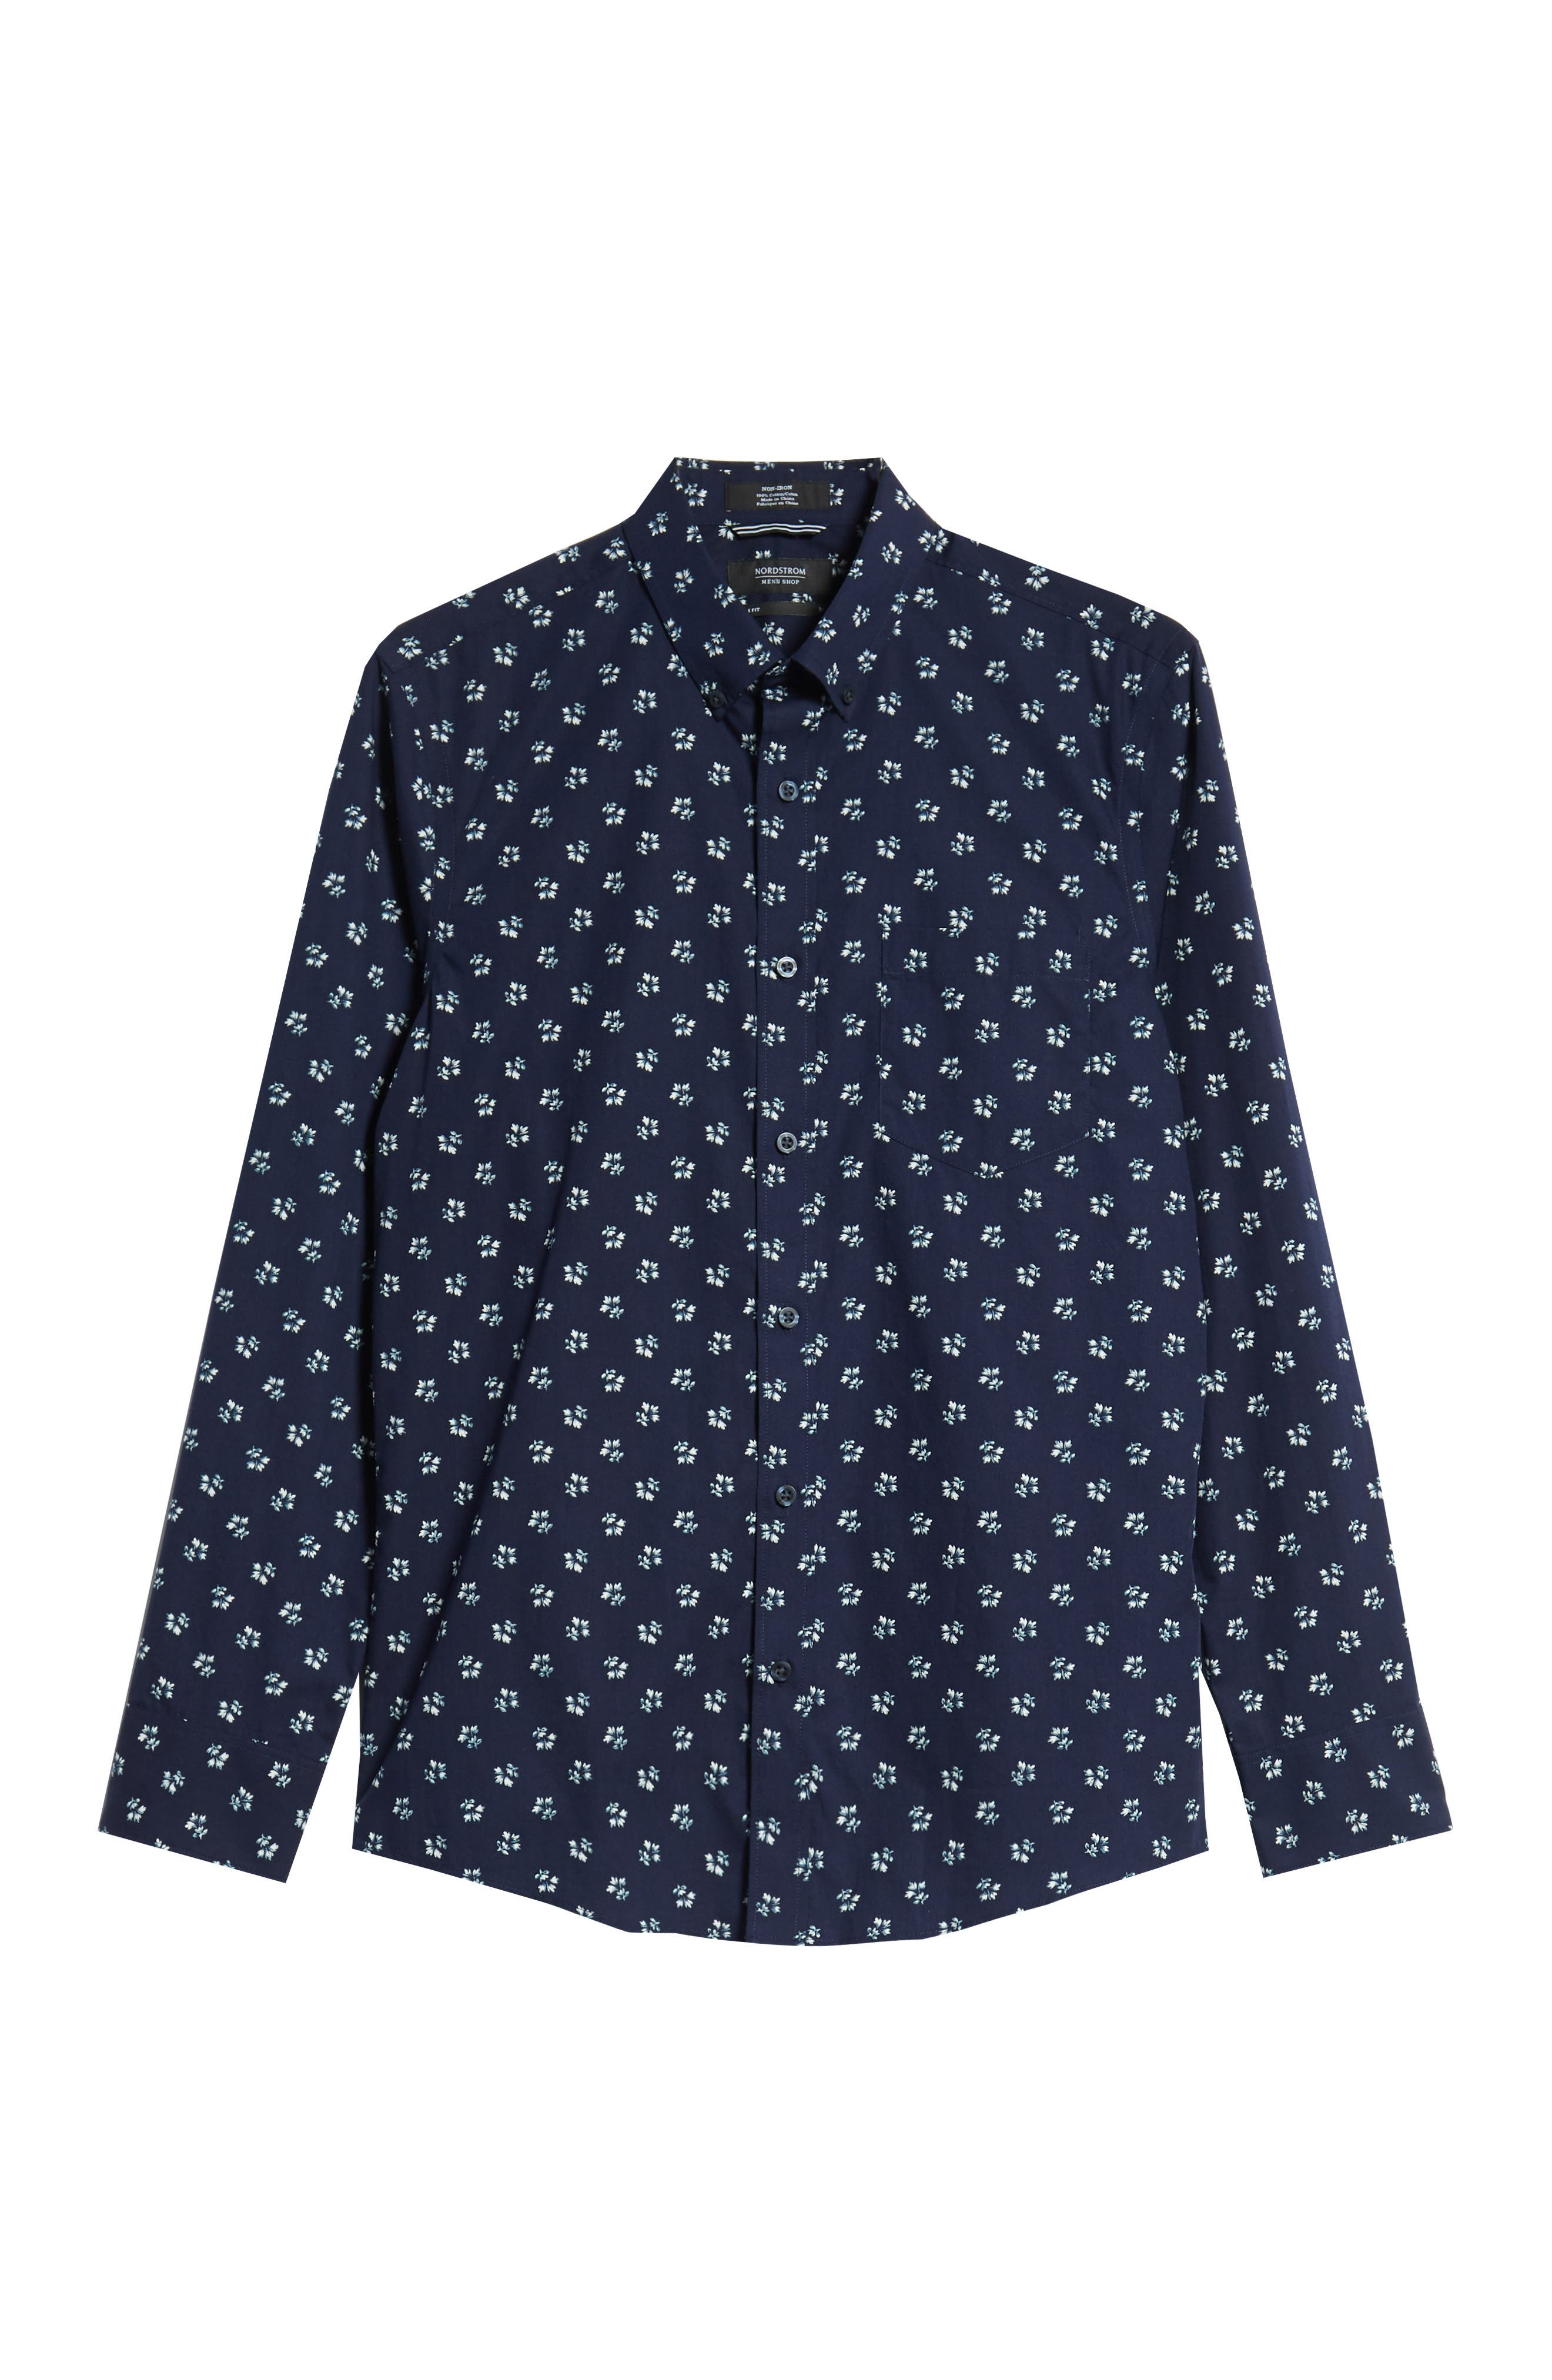 Trim Fit Non-Iron Print Sport Shirt,                             Alternate thumbnail 6, color,                             NAVY NIGHT FLORAL PRINT